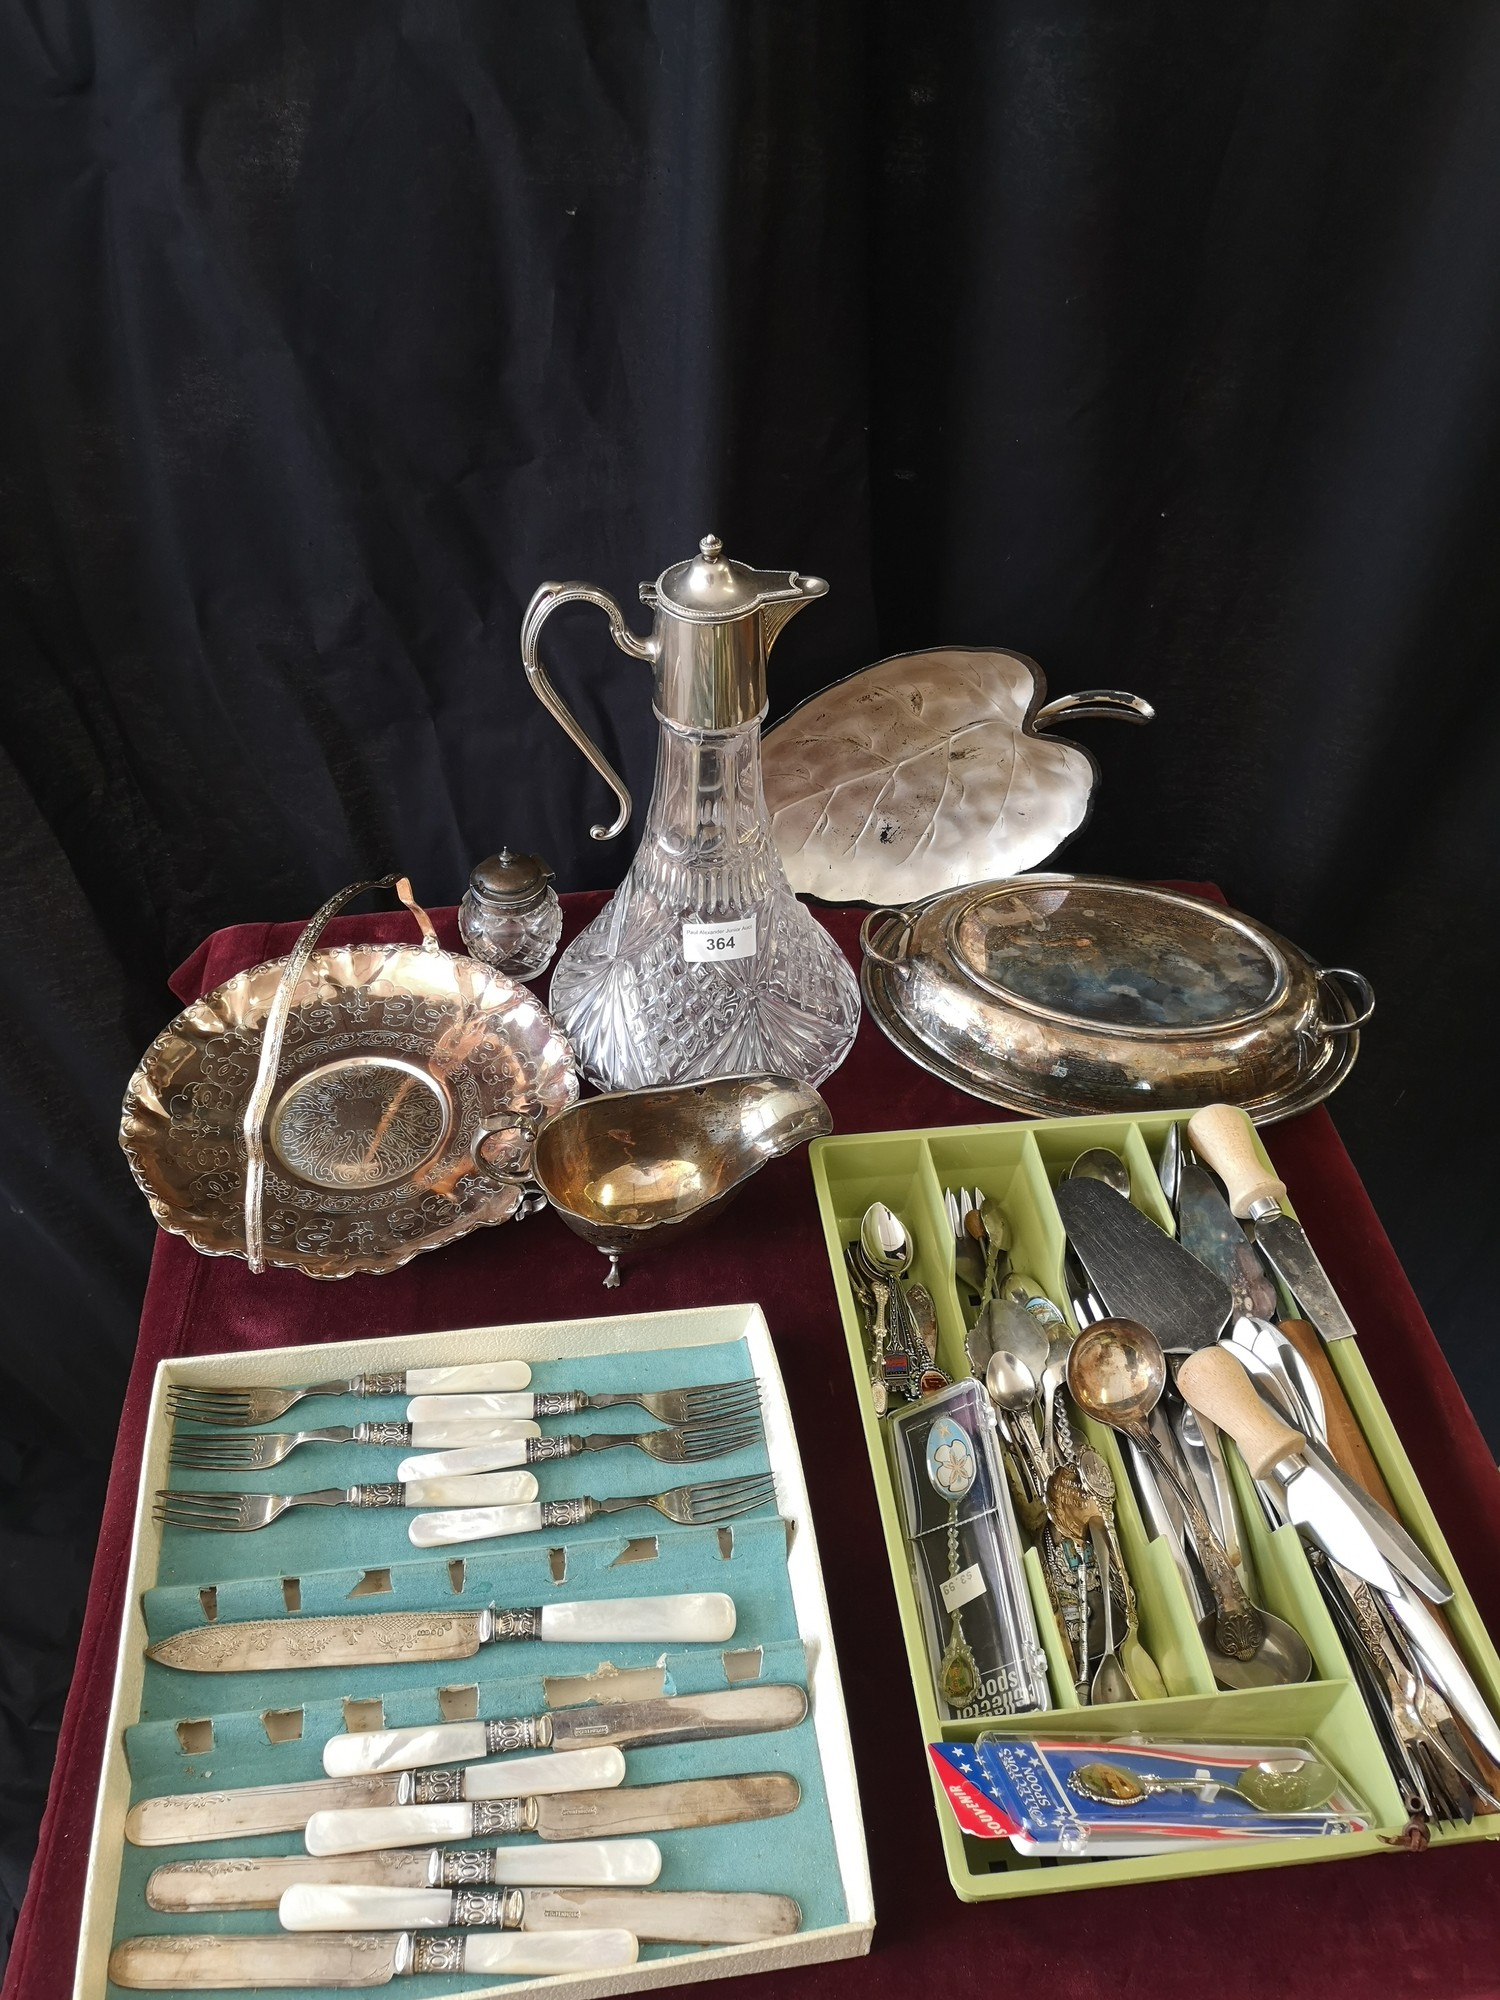 Lot of Silver plated wares includes cutlery, silver plated tureen etc. - Image 2 of 2